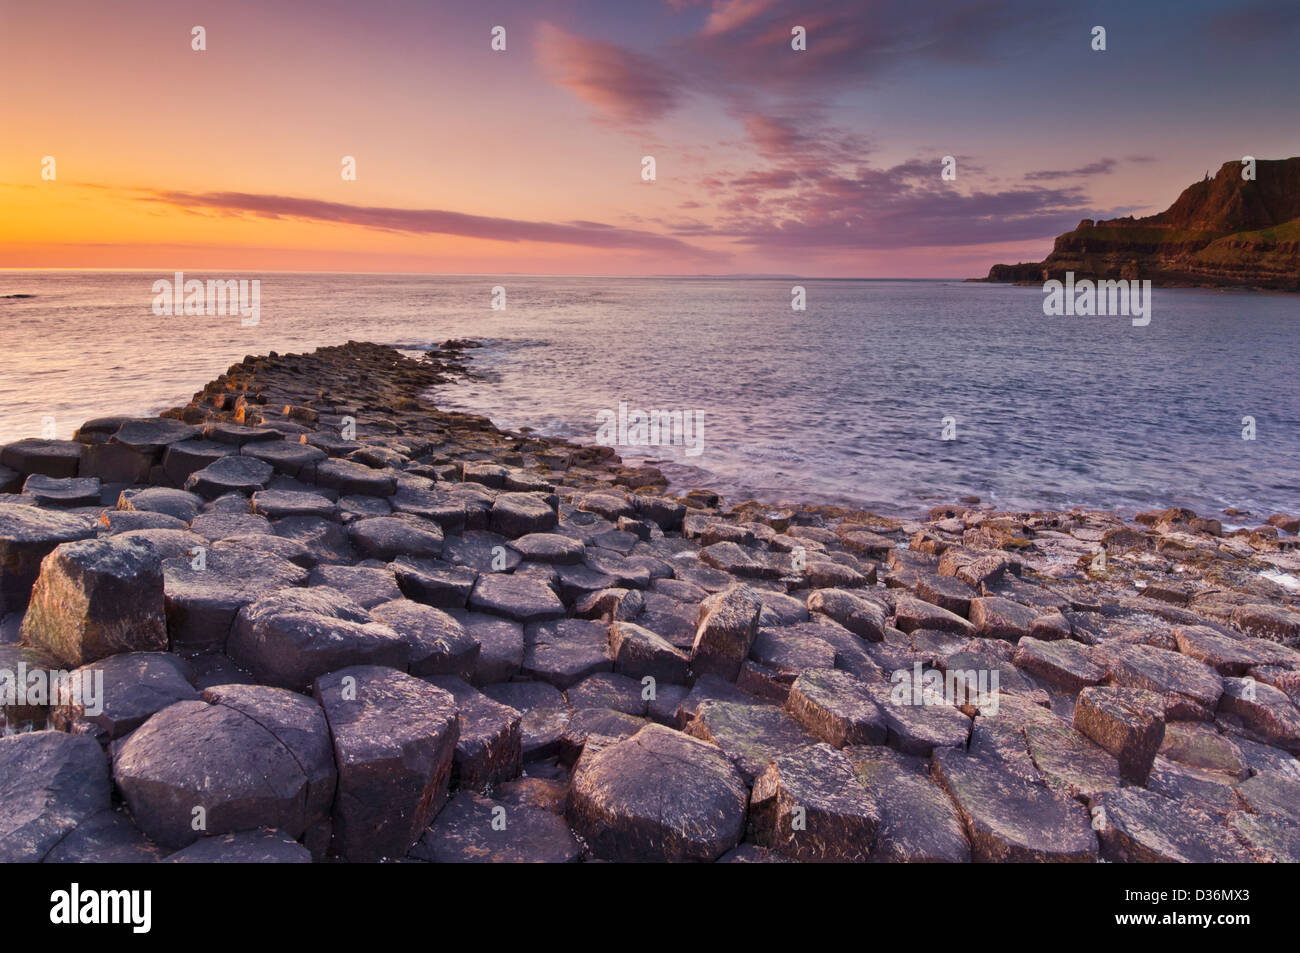 Giants Causeway north Antrim coast County Antrim Northern Ireland GB UK EU Europe - Stock Image